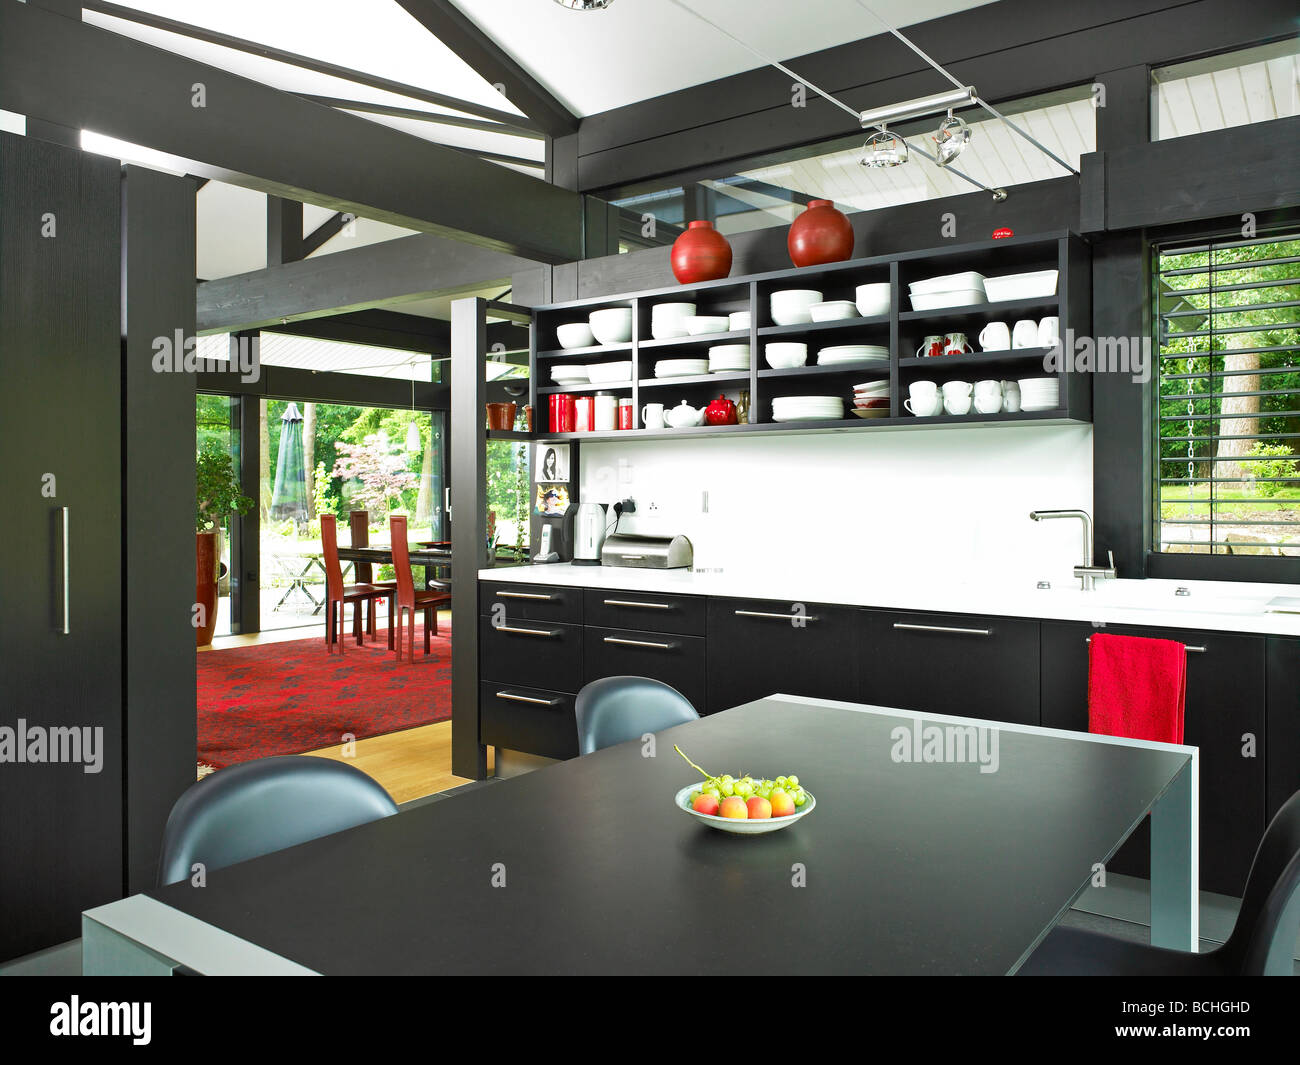 Self build huf haus kitchen interior stock photo royalty for Haus kitchens